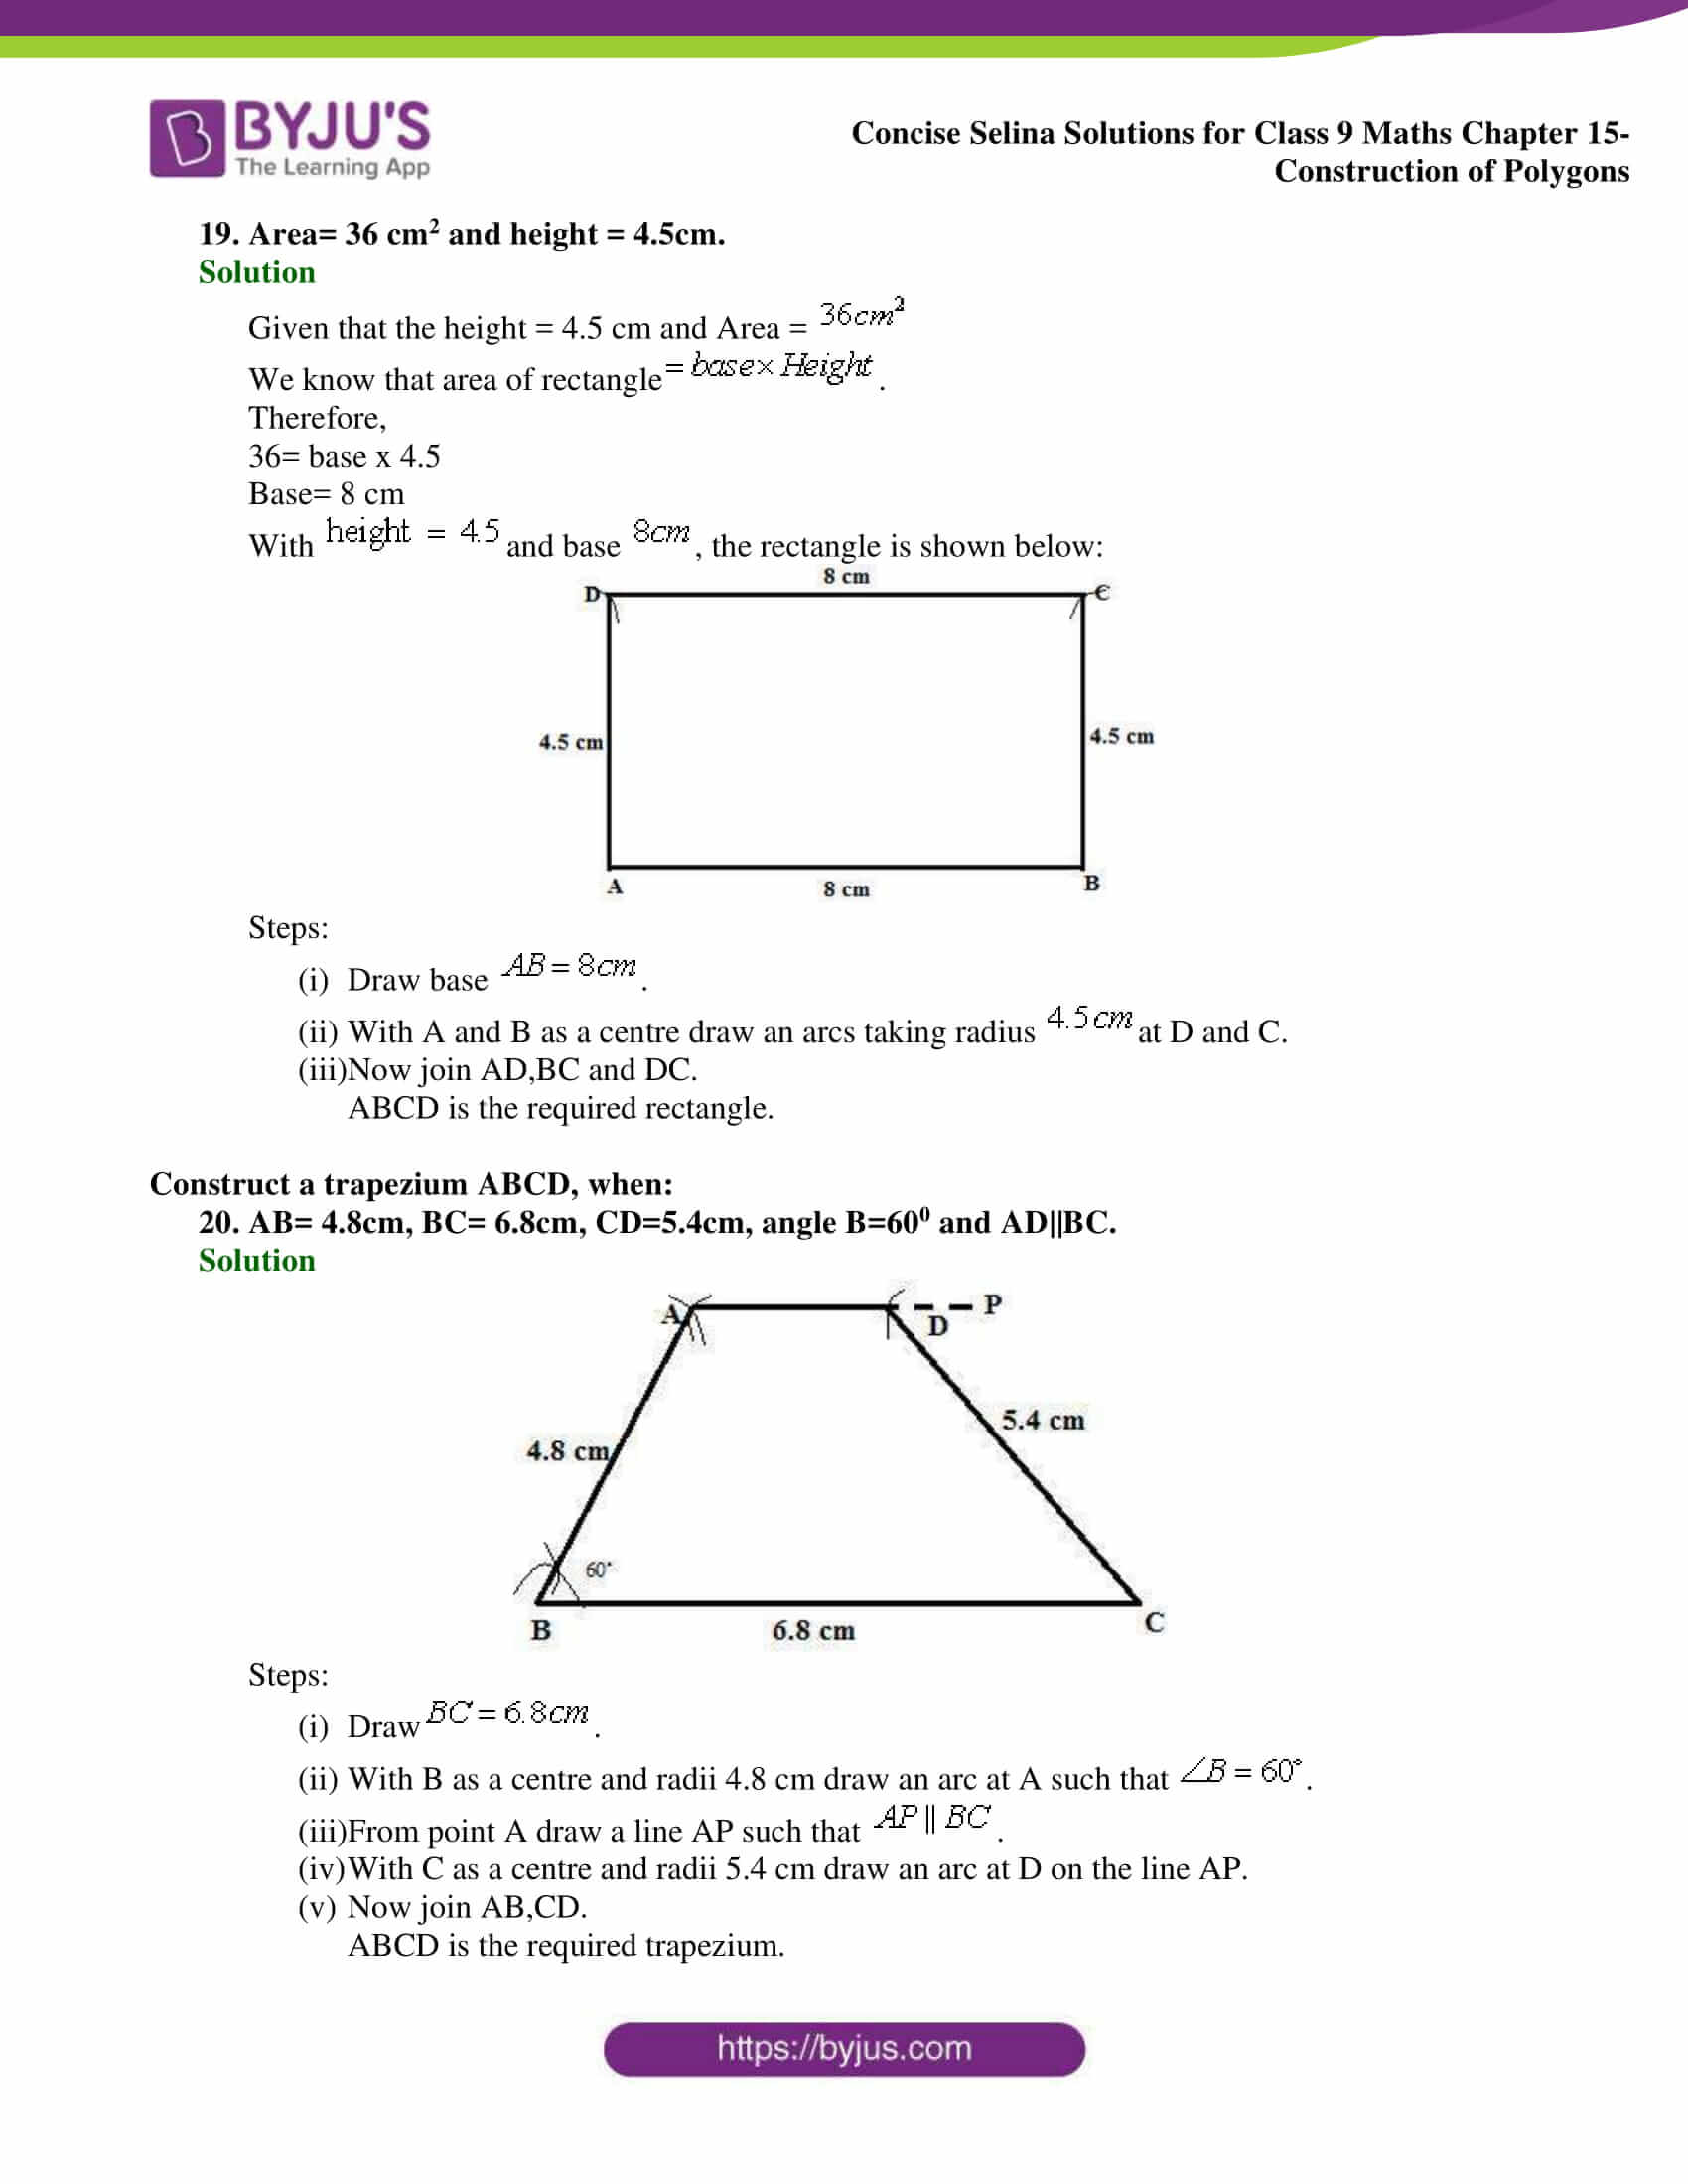 selina Solutions for Class 9 Maths Chapter 15 part 10